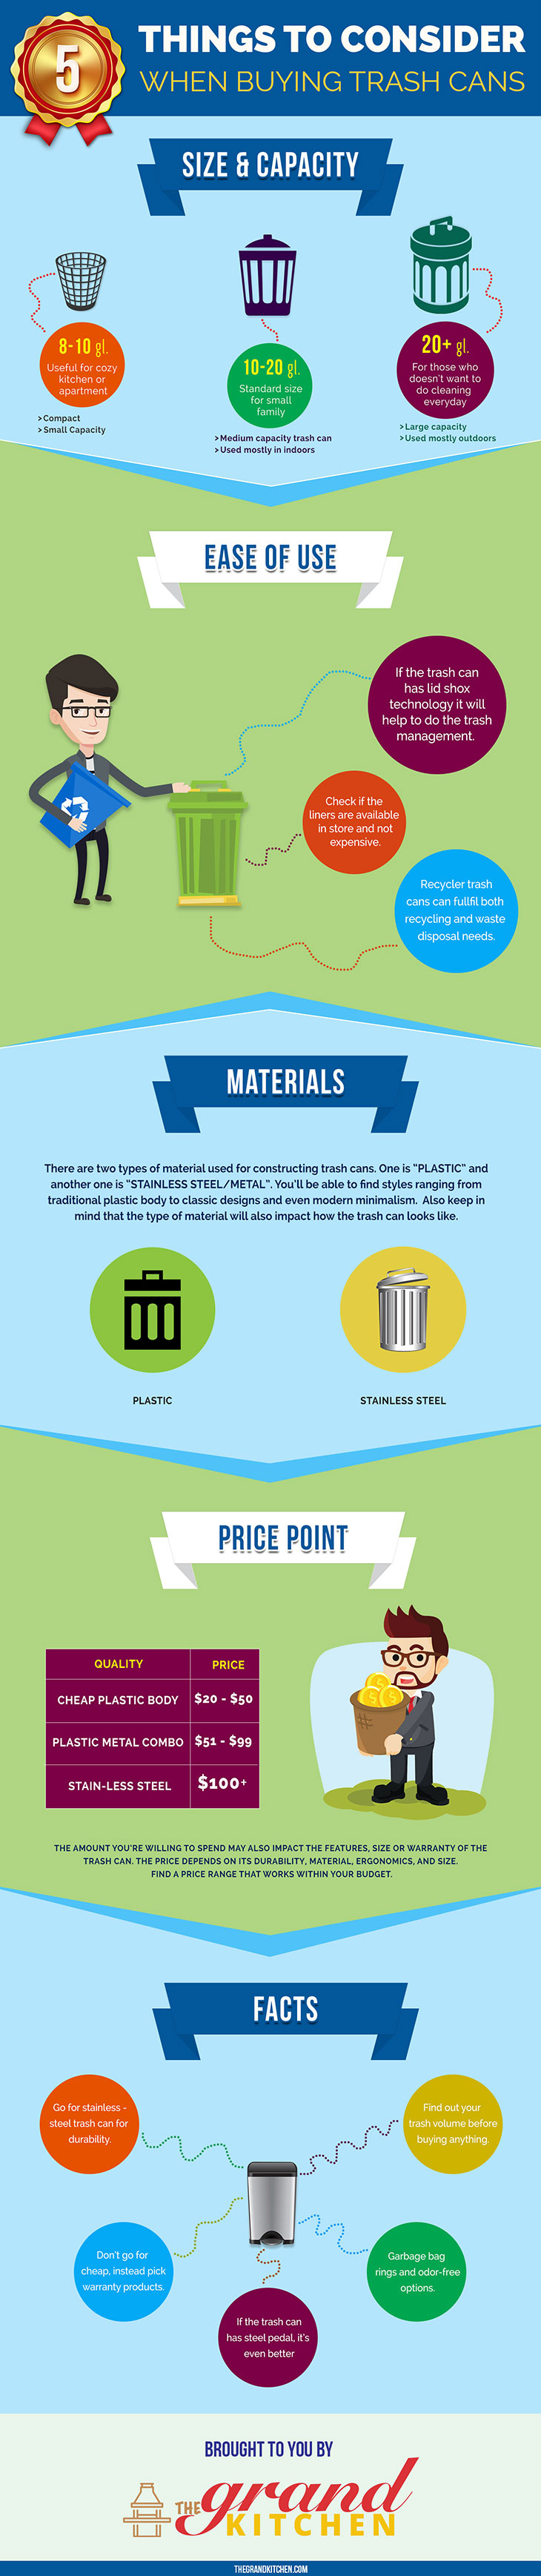 5 Things to Consider​ When Buying Trash Cans